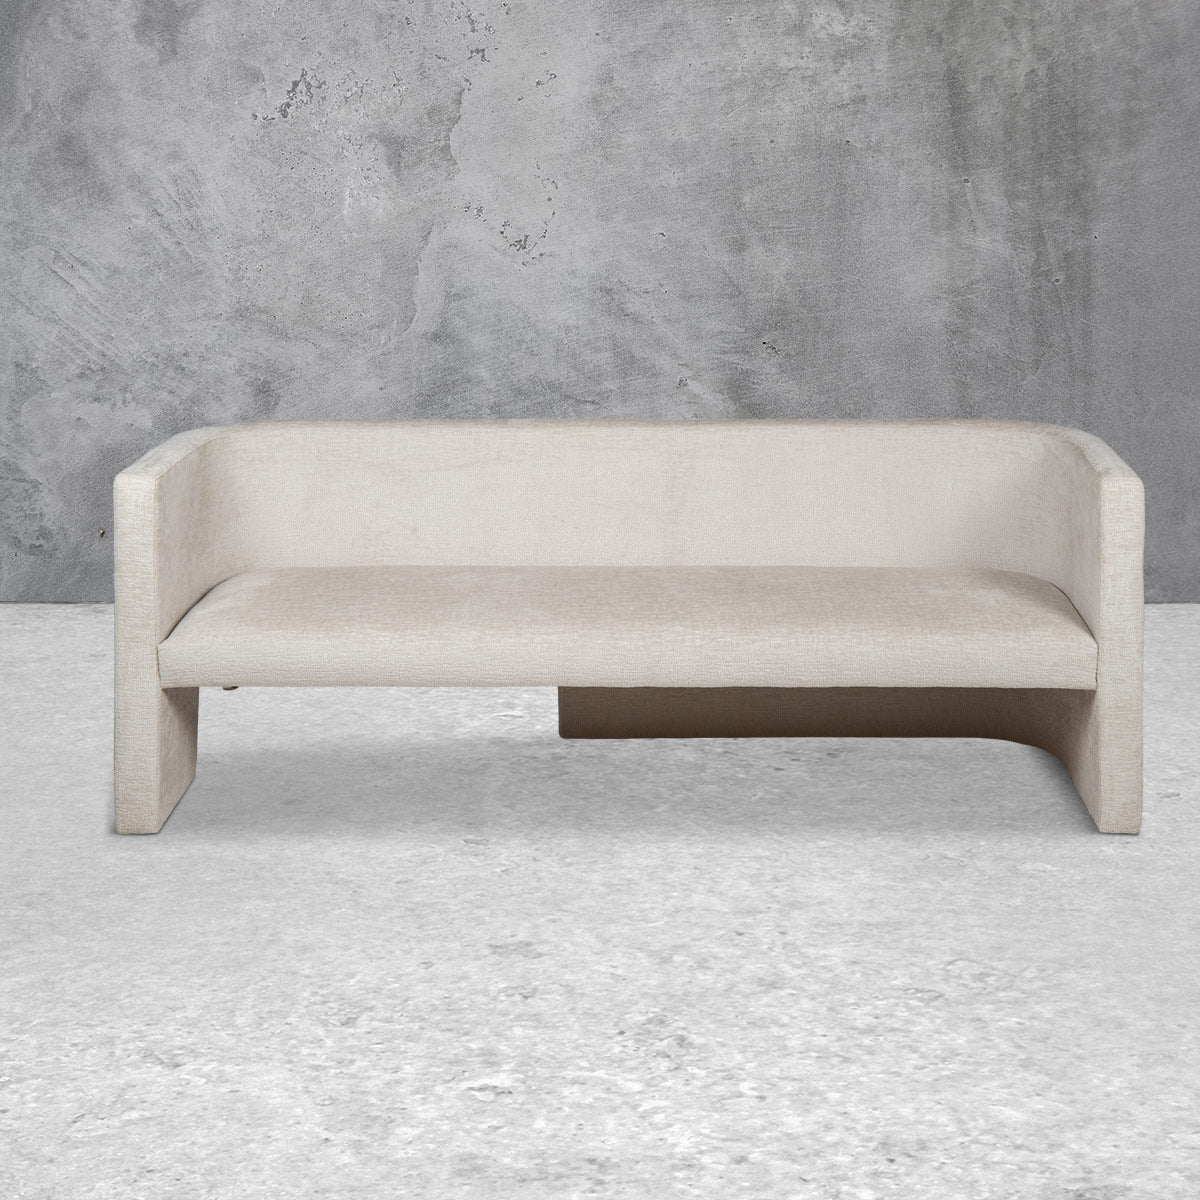 Bench style loveseat sofa with a mid-rise back, a single cushion, straight edges, a half-open base and light beige upholstery.